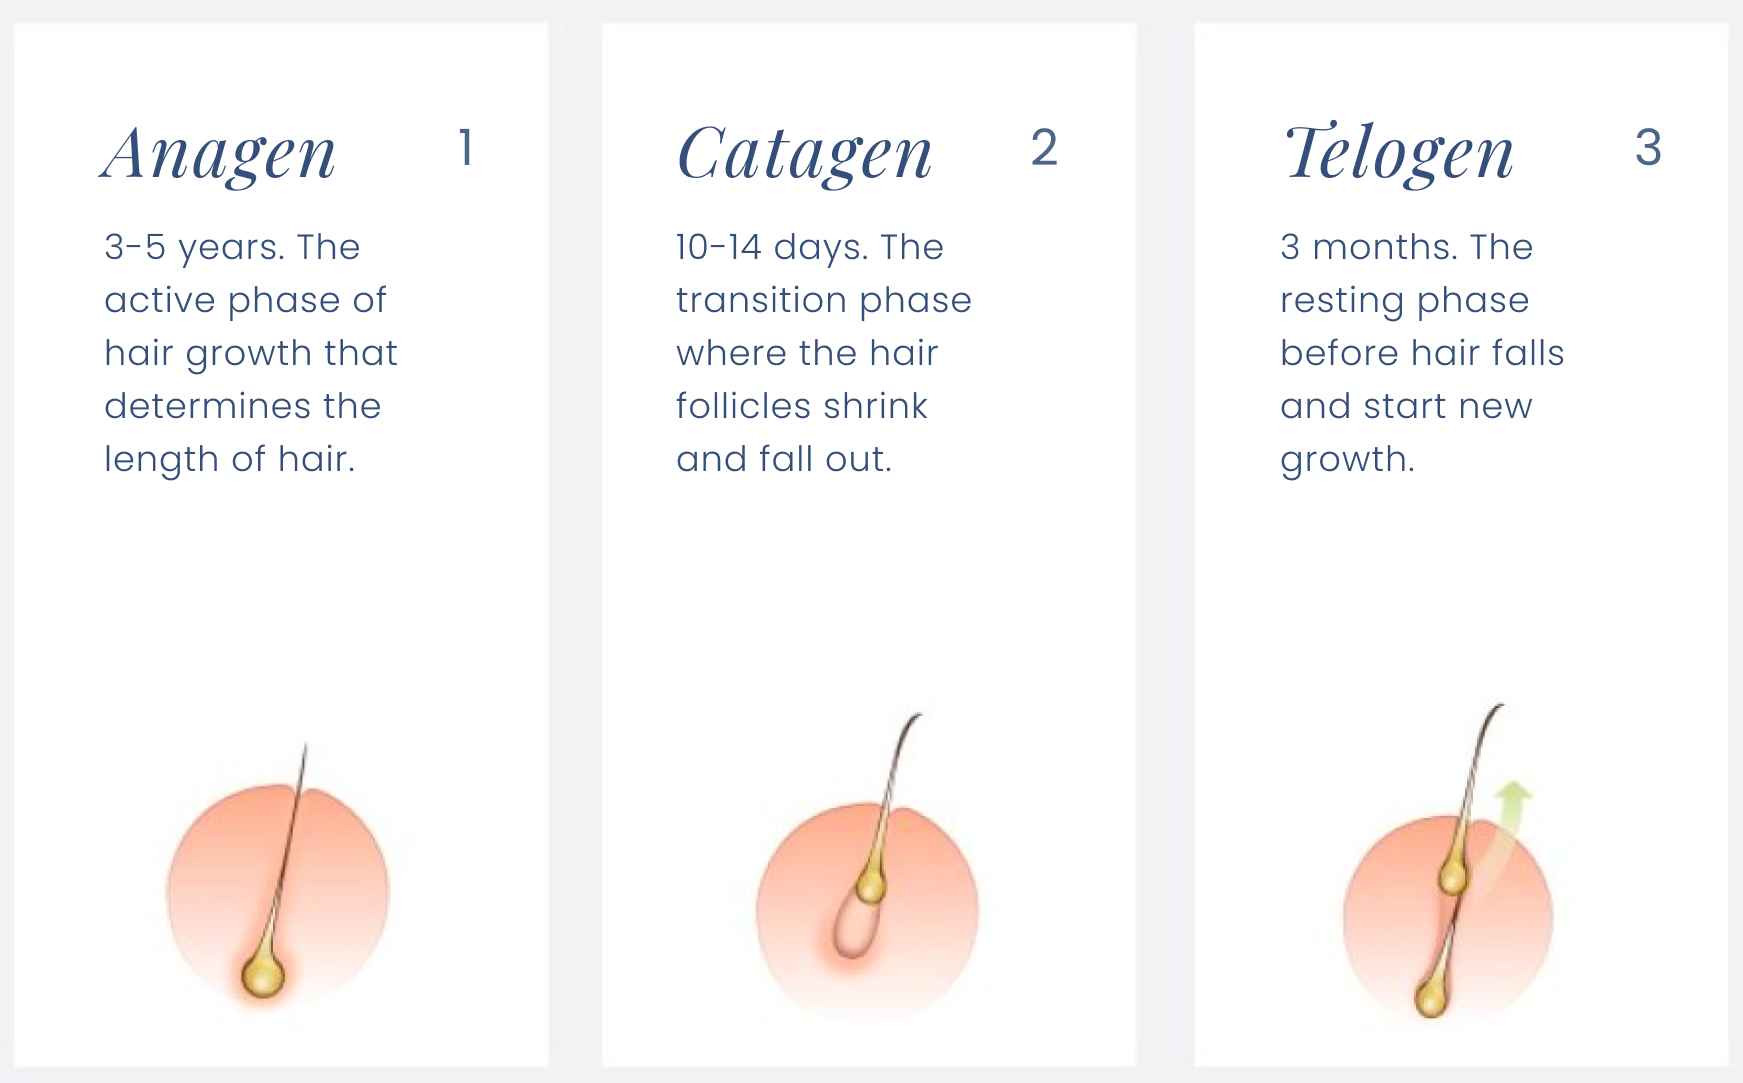 Three phases of the hair growth cycle to better understand hair loss with hypothyroidism